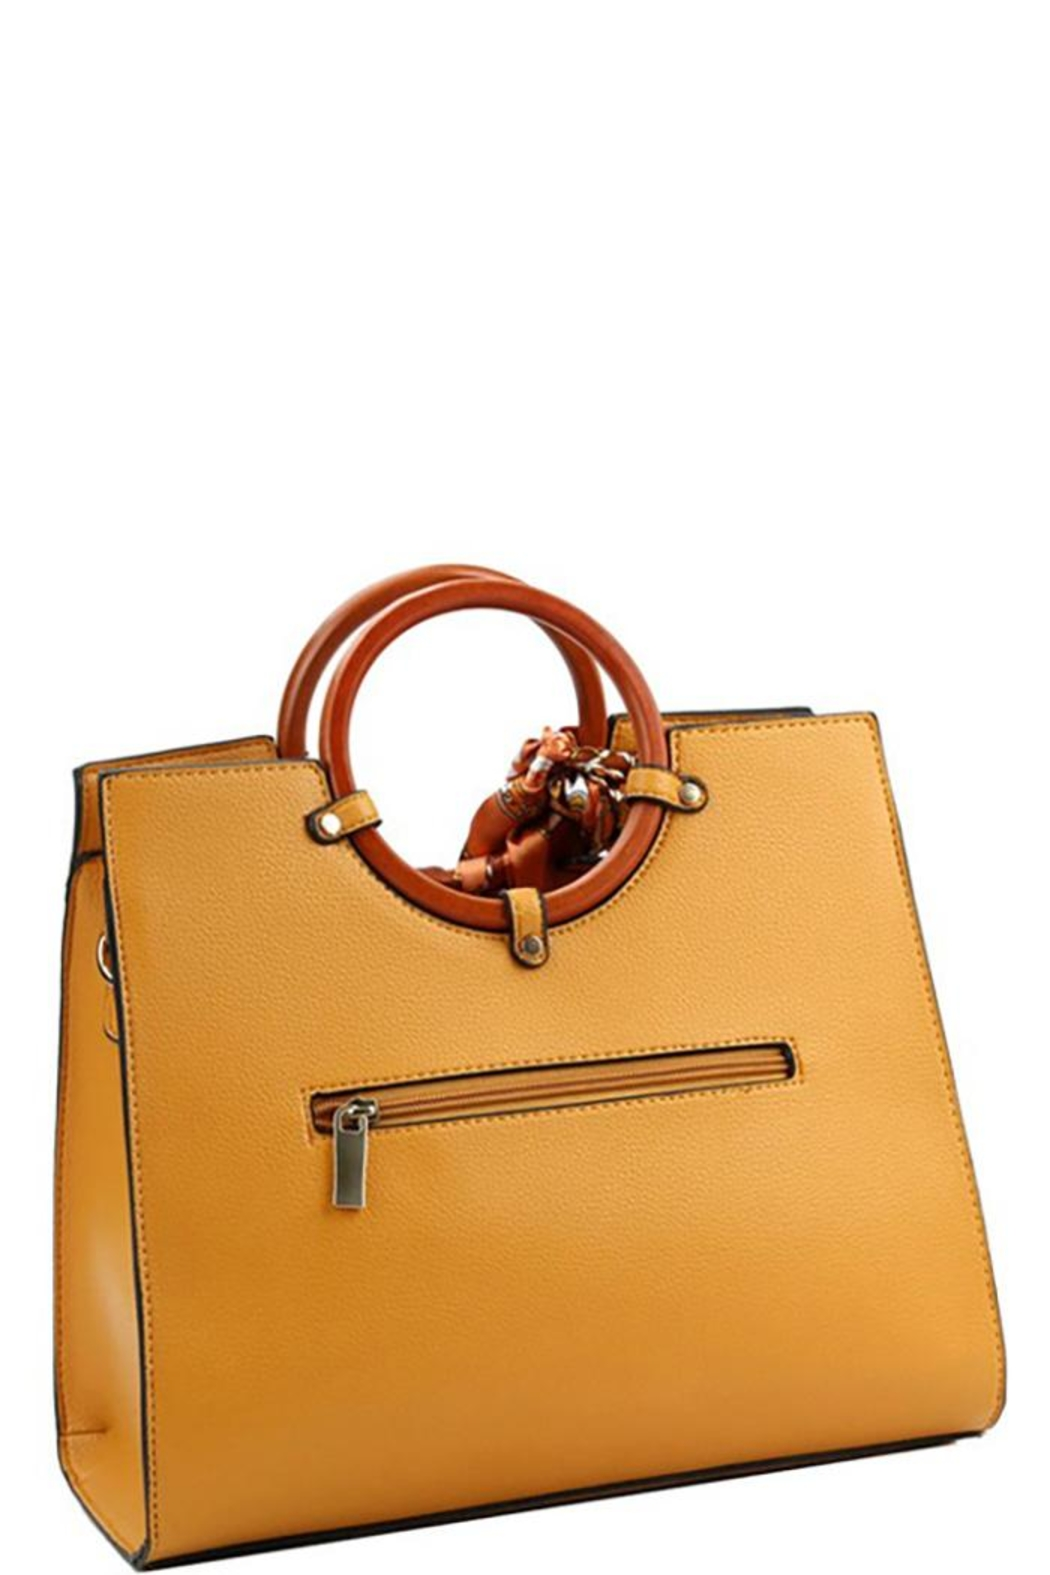 Nadya's Closet Wooden Handle Structured-Satchel - Front Full Image